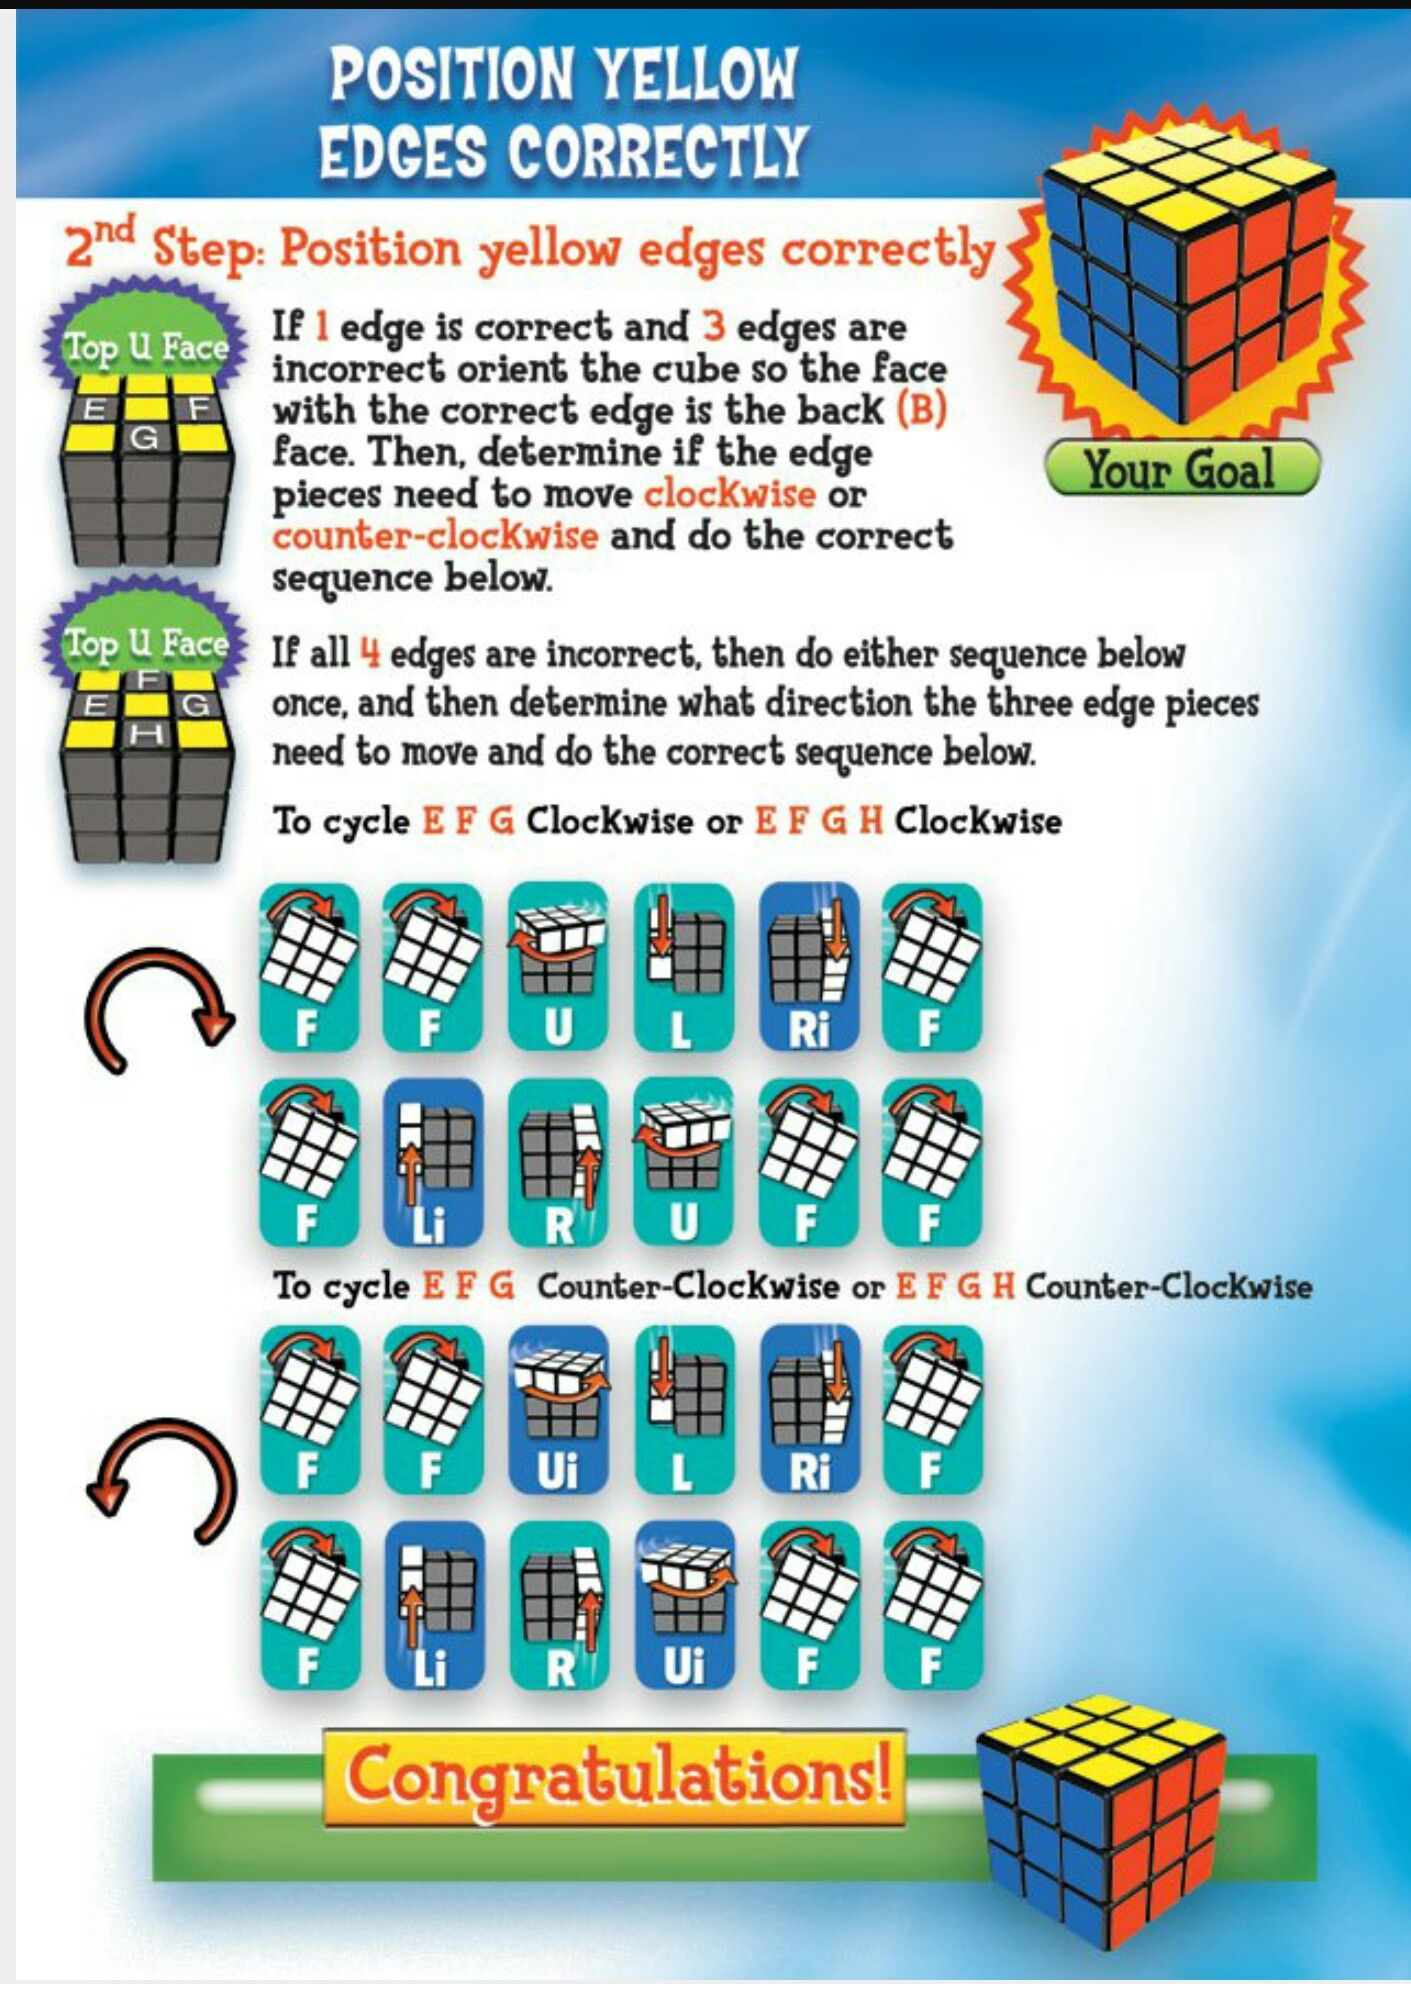 Pin By Erika Guerra On Rubiks Cube Pinterest Cube